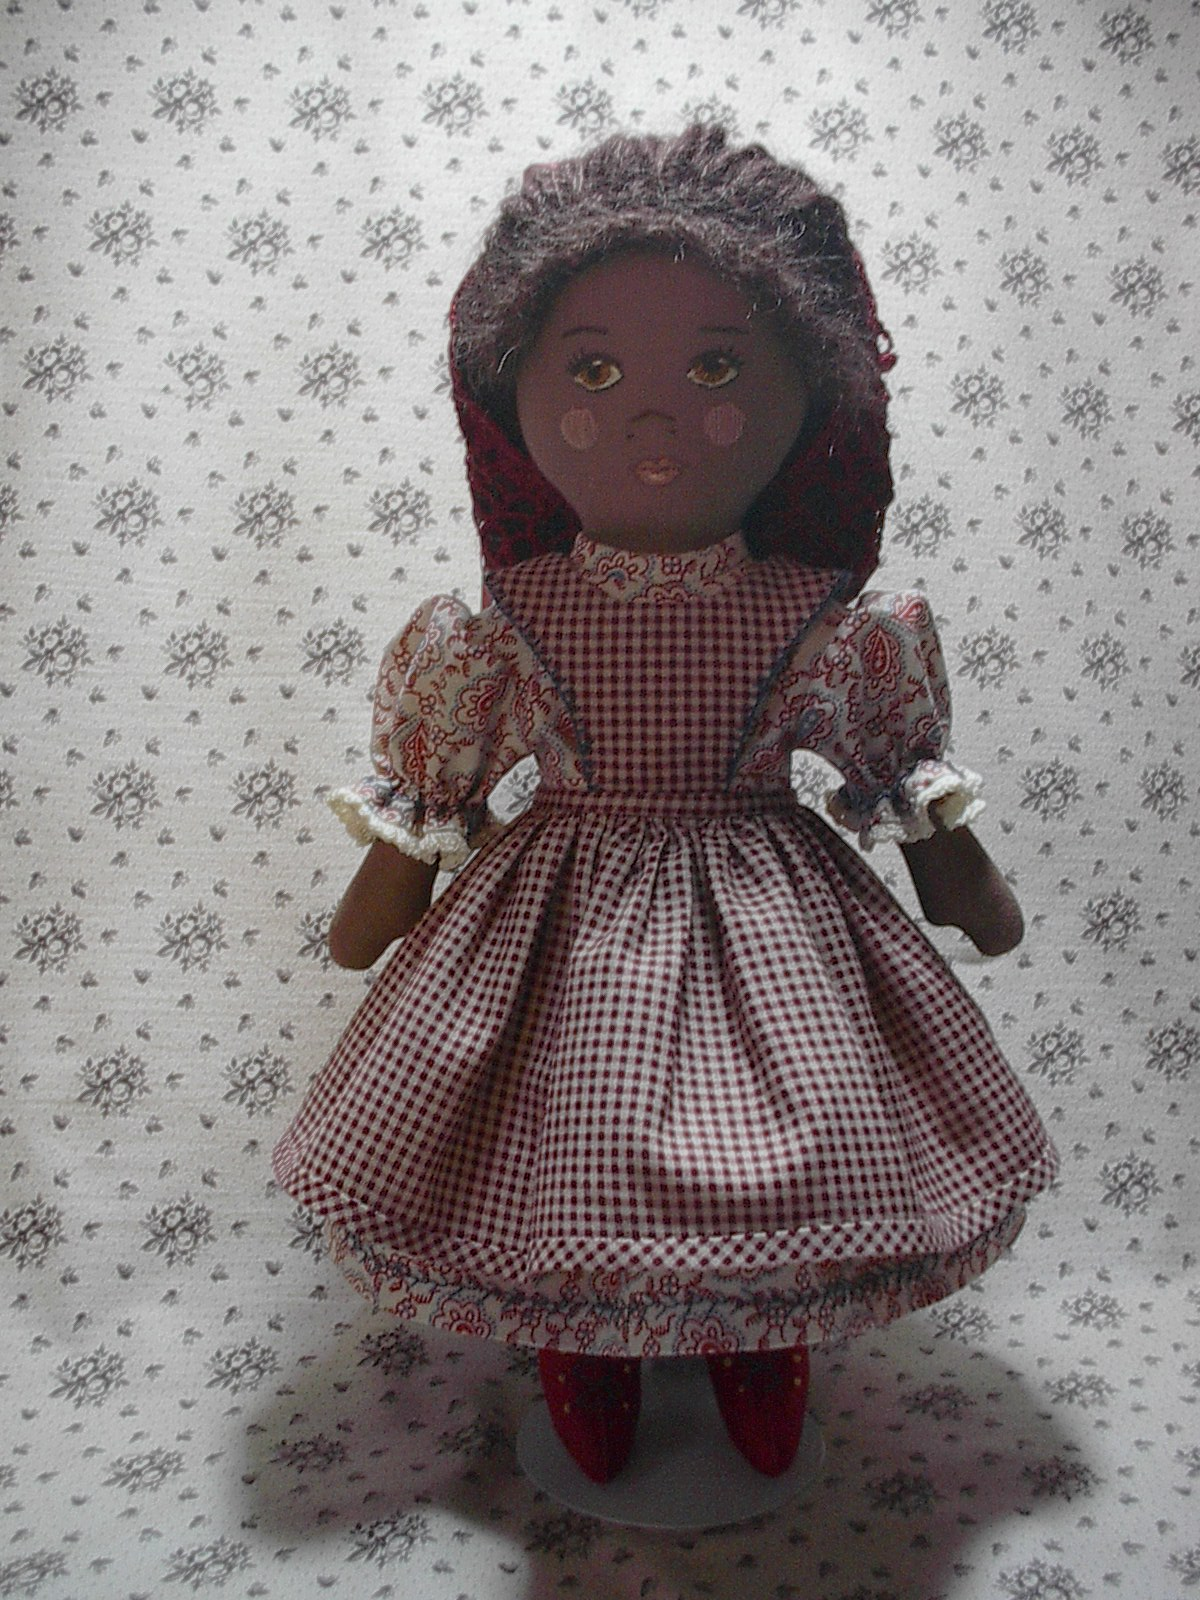 ... cloth doll i called prairie flowers she is a simple cloth doll 11 1 2